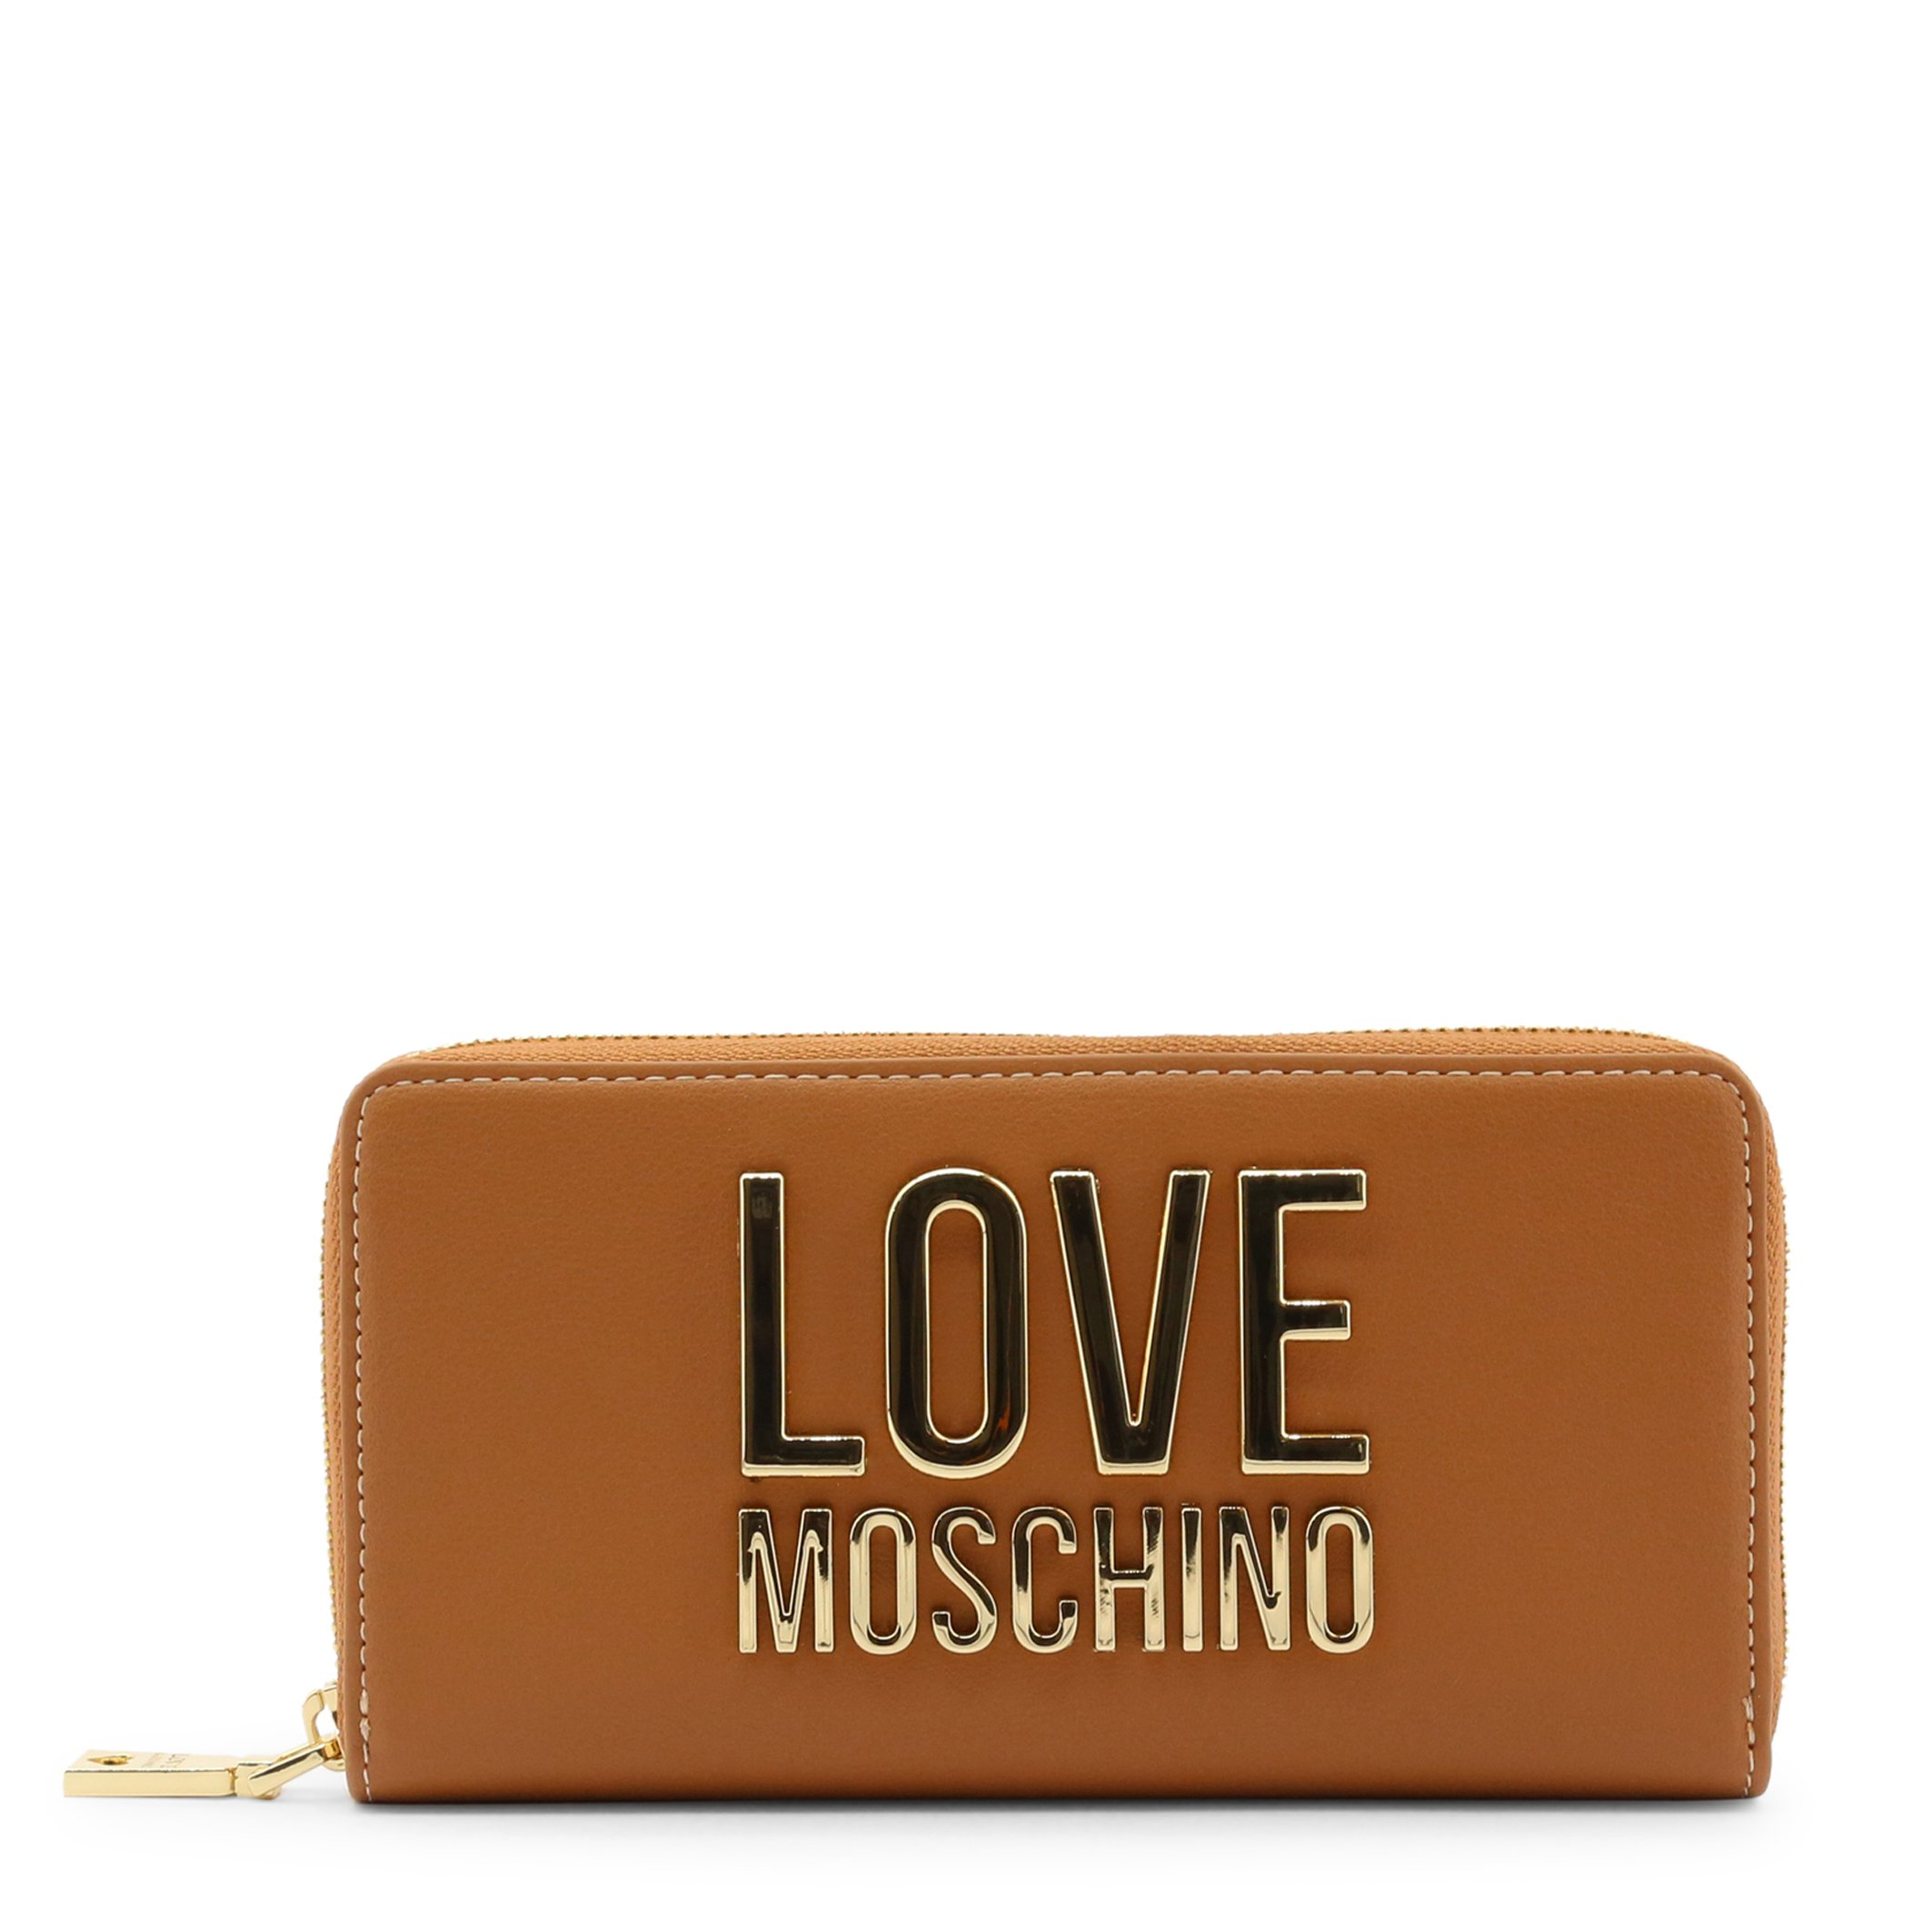 Love Moschino Women's Wallet Various Colours JC5611PP1DLJ0 - brown NOSIZE